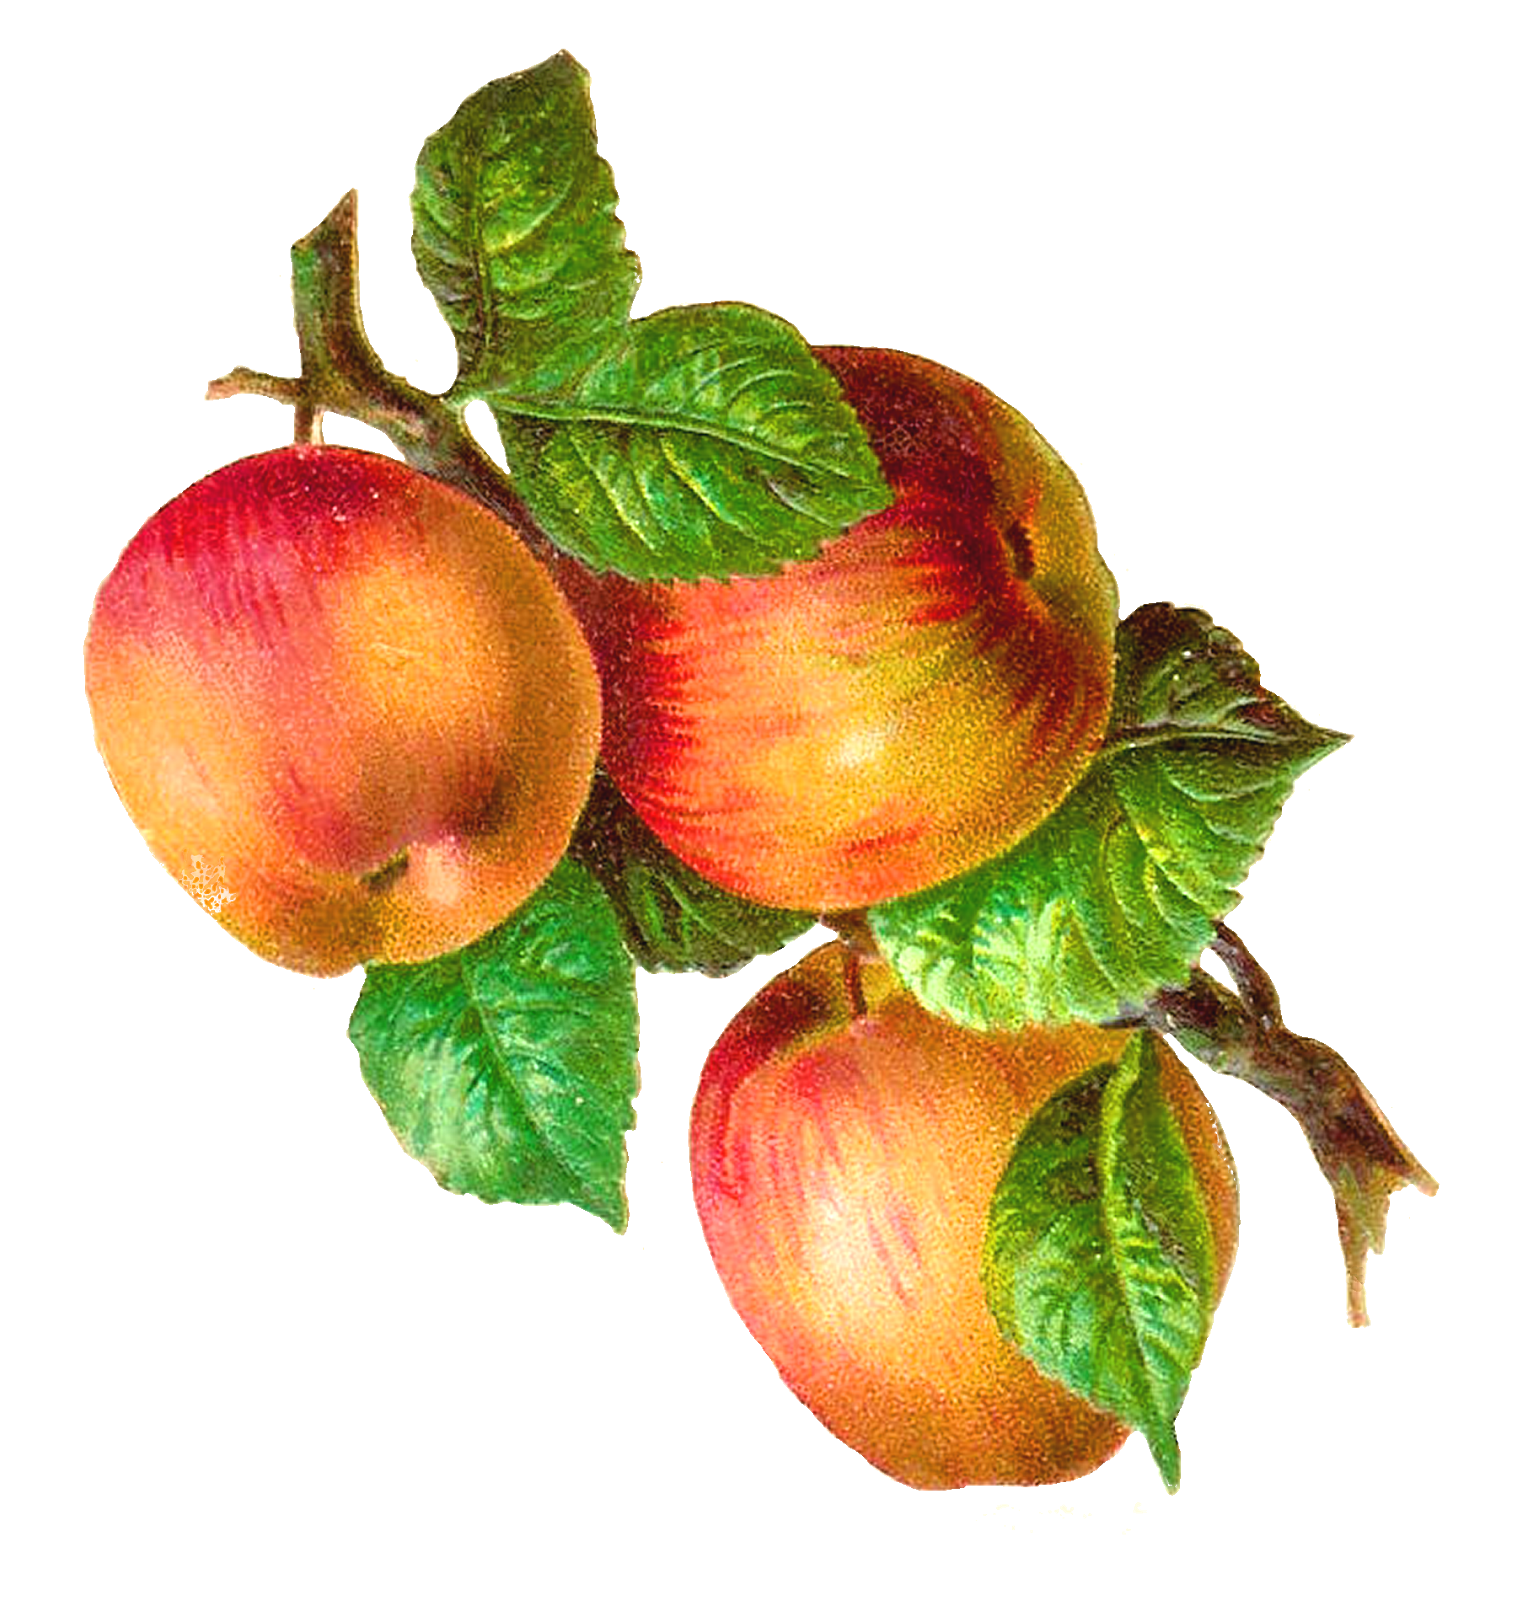 Victorian apple clipart png freeuse stock Antique Images: Free Fruit Clip Art: 3 Gala Apples on a Branch Graphic png freeuse stock